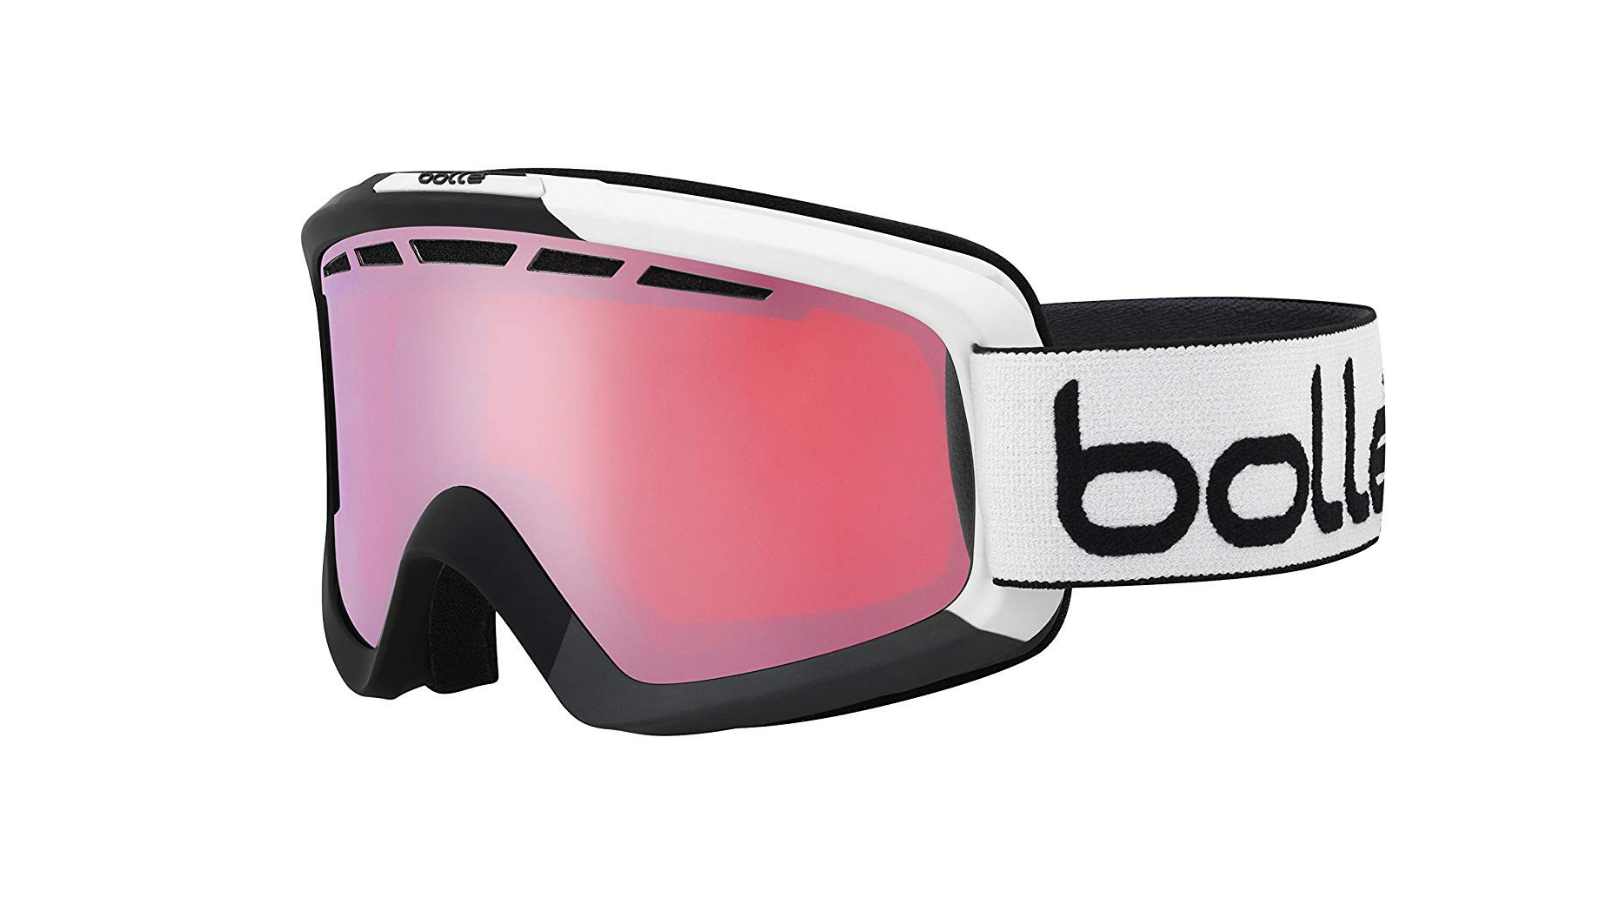 282c58ada40 If you re a skiing novice then there s no need to spend a fortune on  high-tech goggles. You ll probably be sticking to the beginner slopes and  won t ...